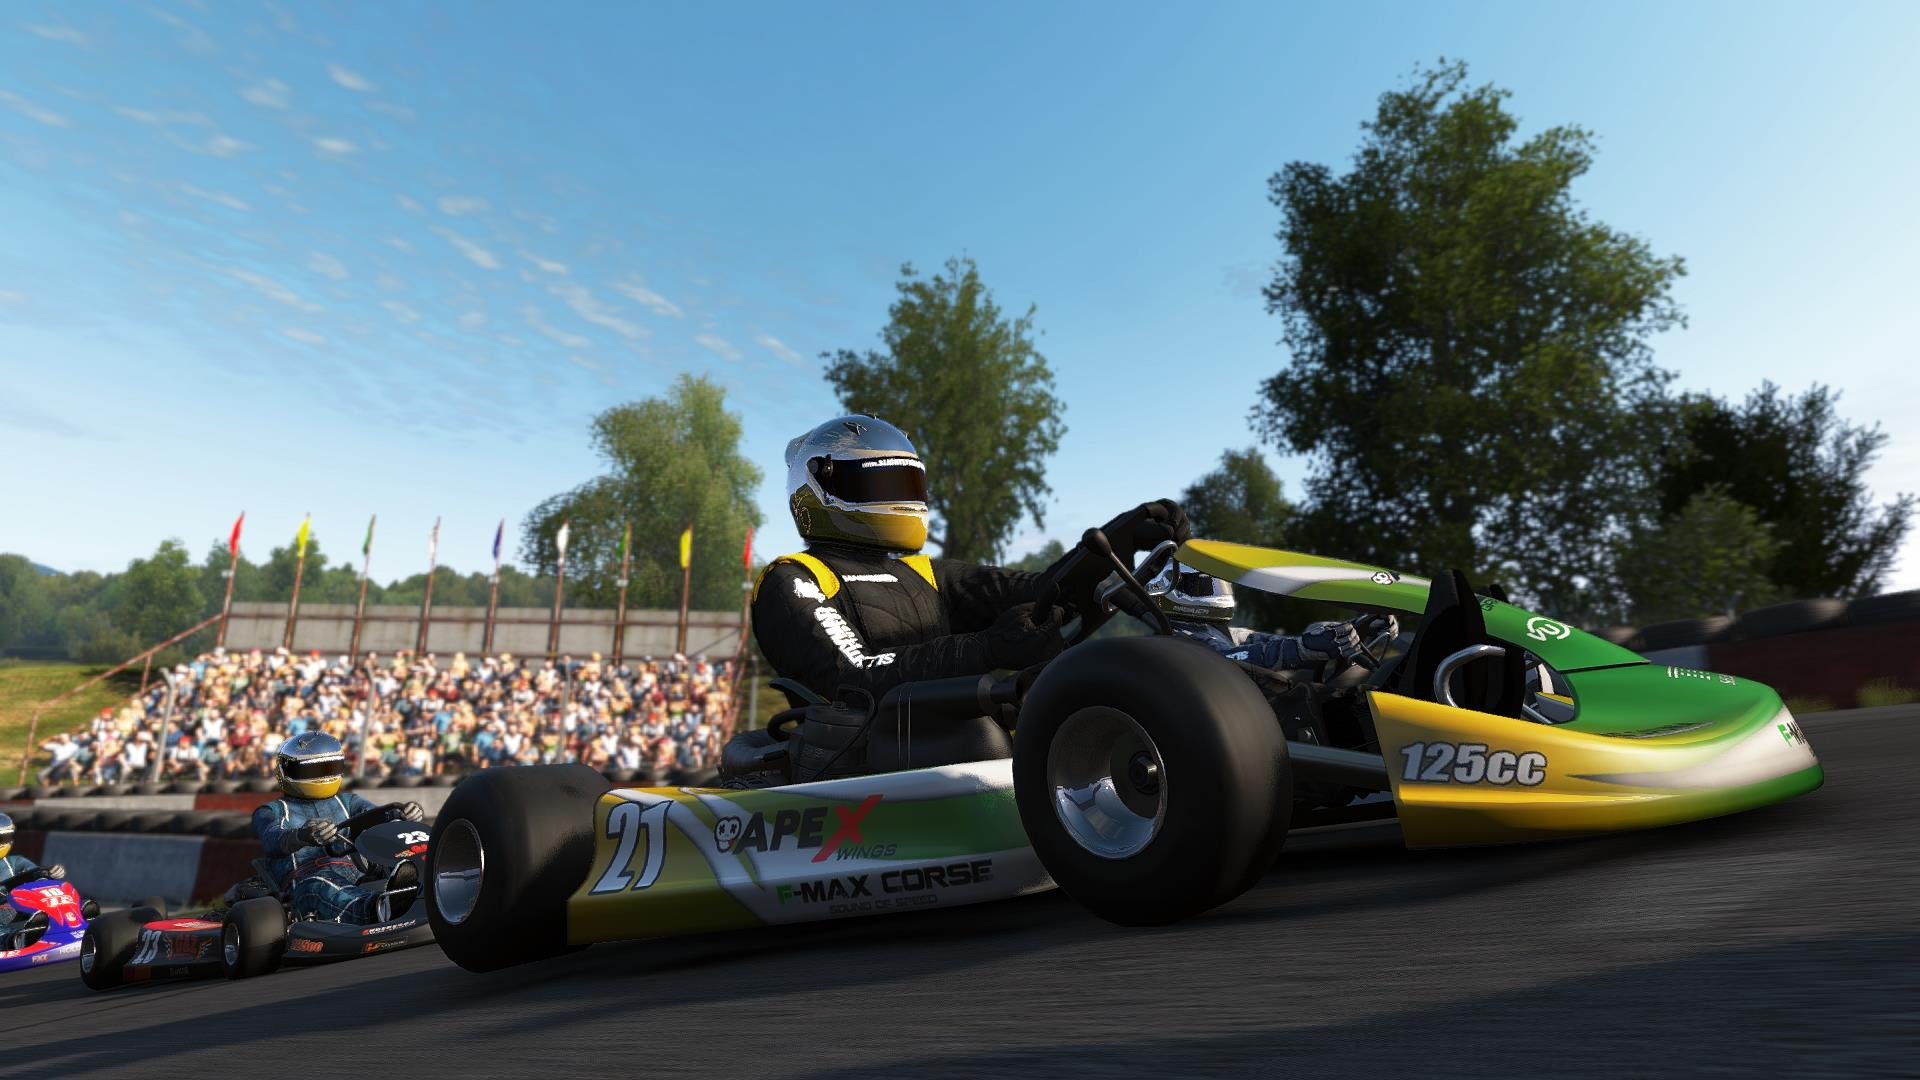 Project Cars Screens Are All About Karting